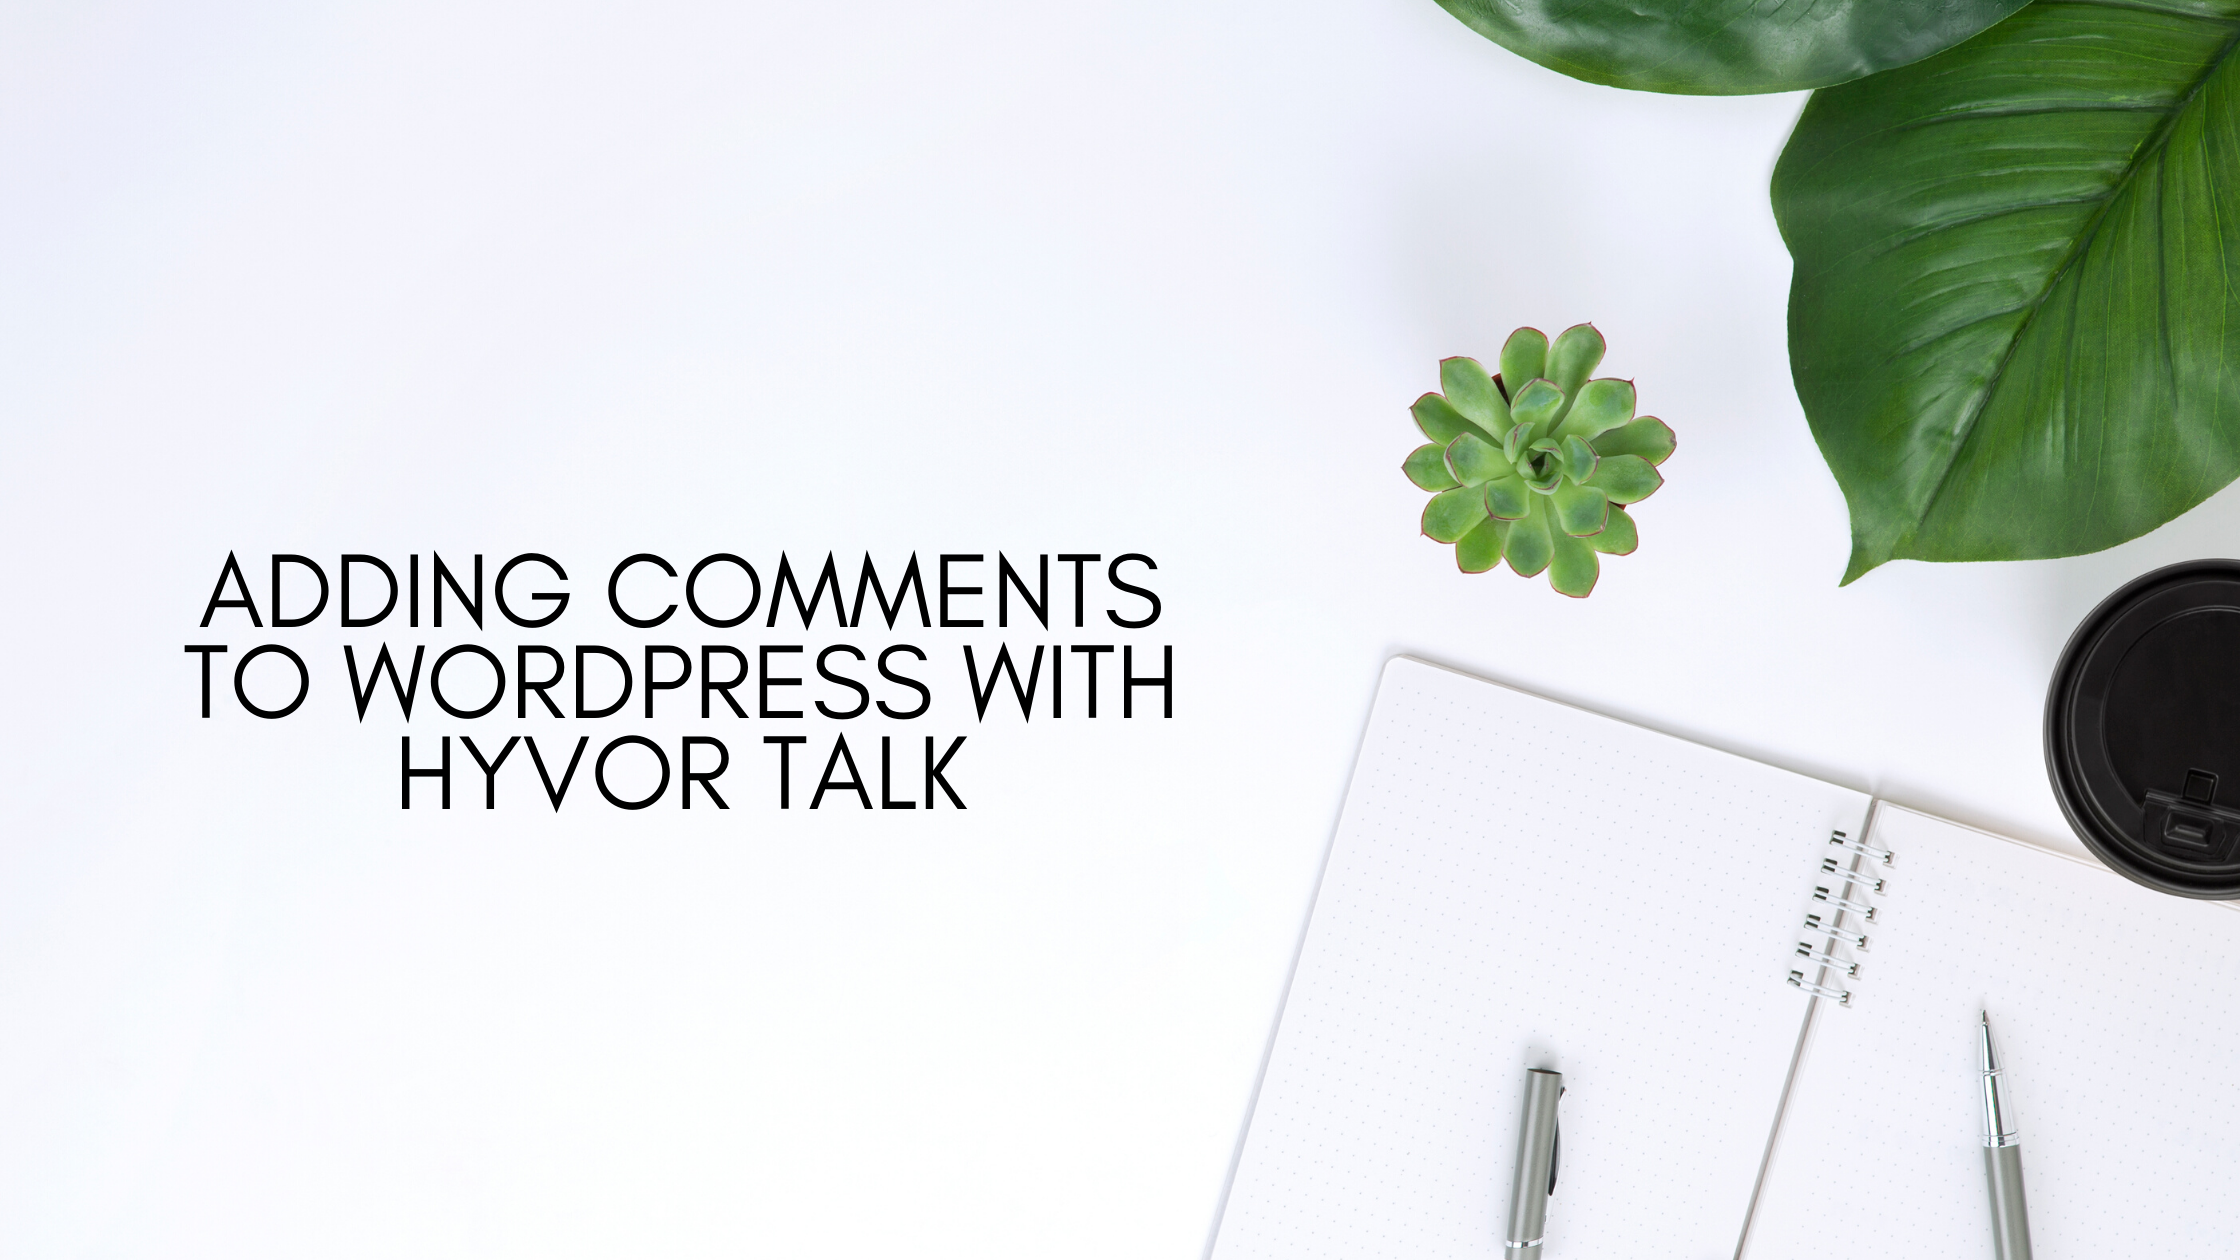 Adding Comments to Wordpress with Hyvor Talk